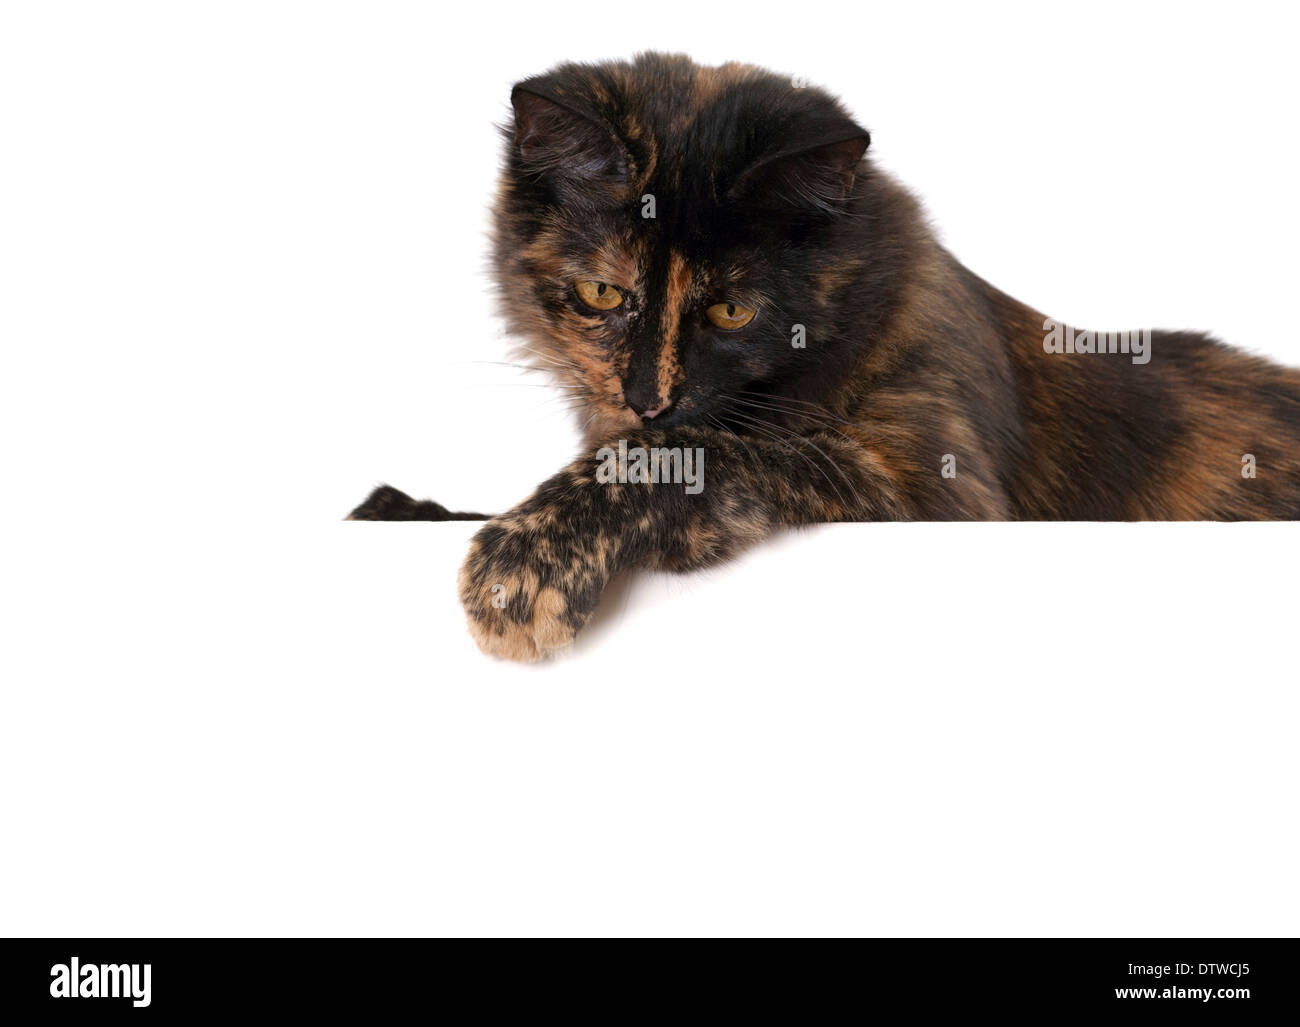 Cat with blank Noticeboard - Stock Image